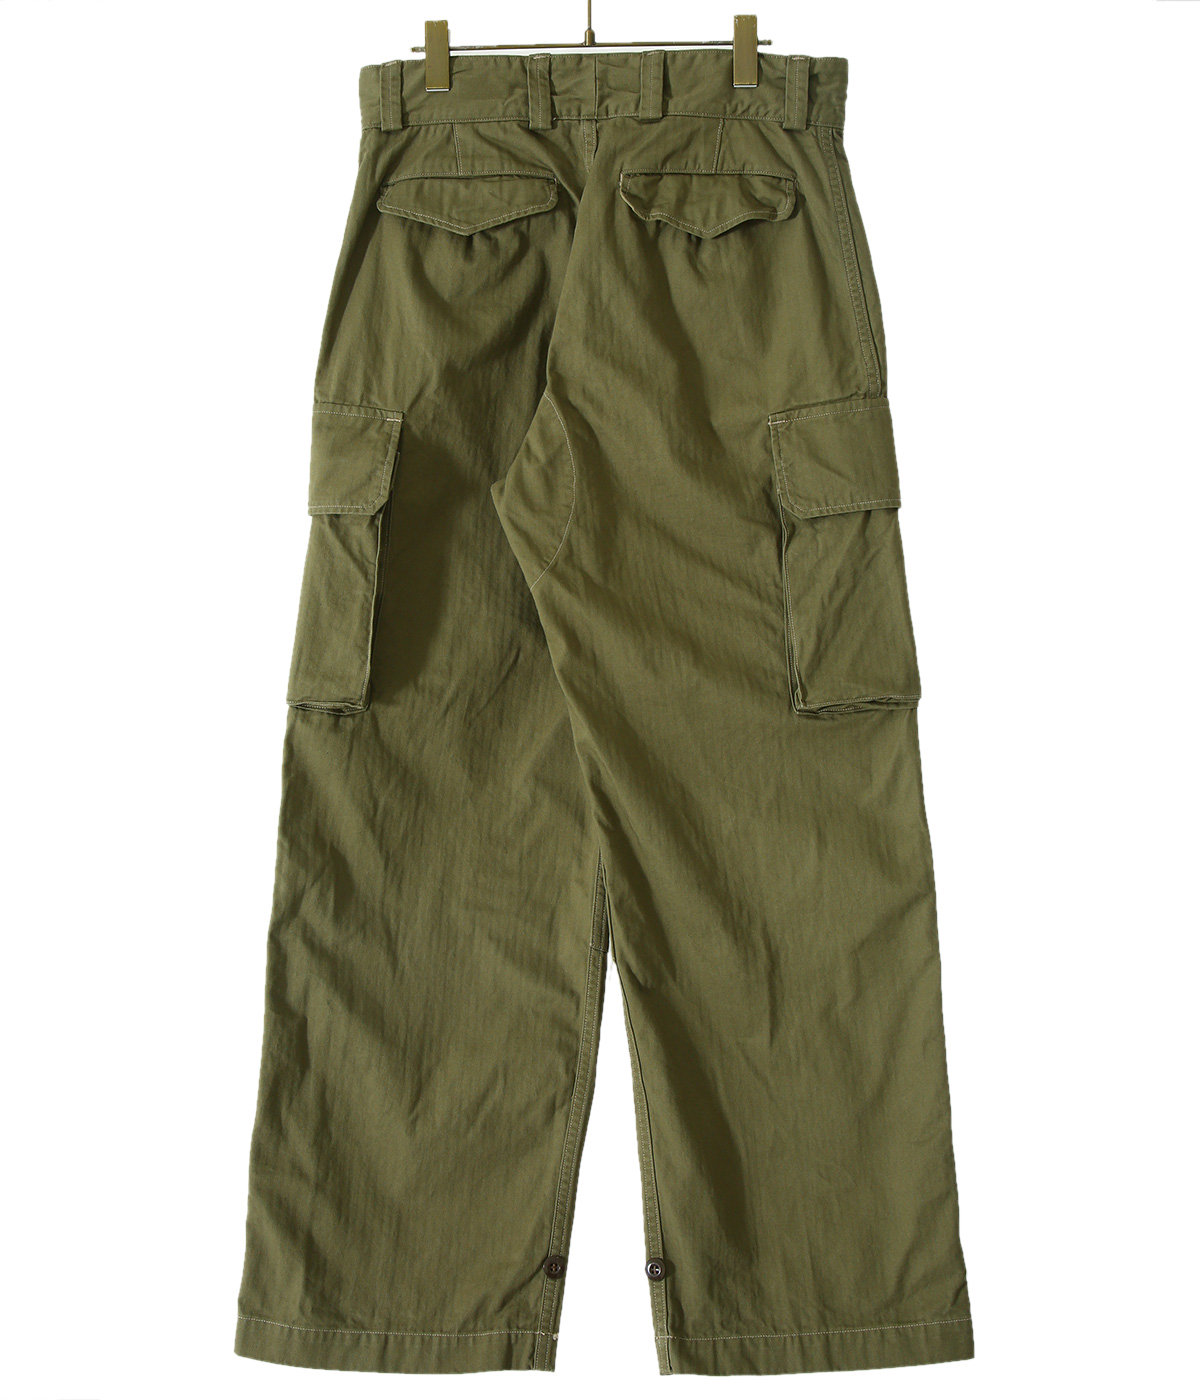 M-47 FRENCH ARMY CARGO PANTS